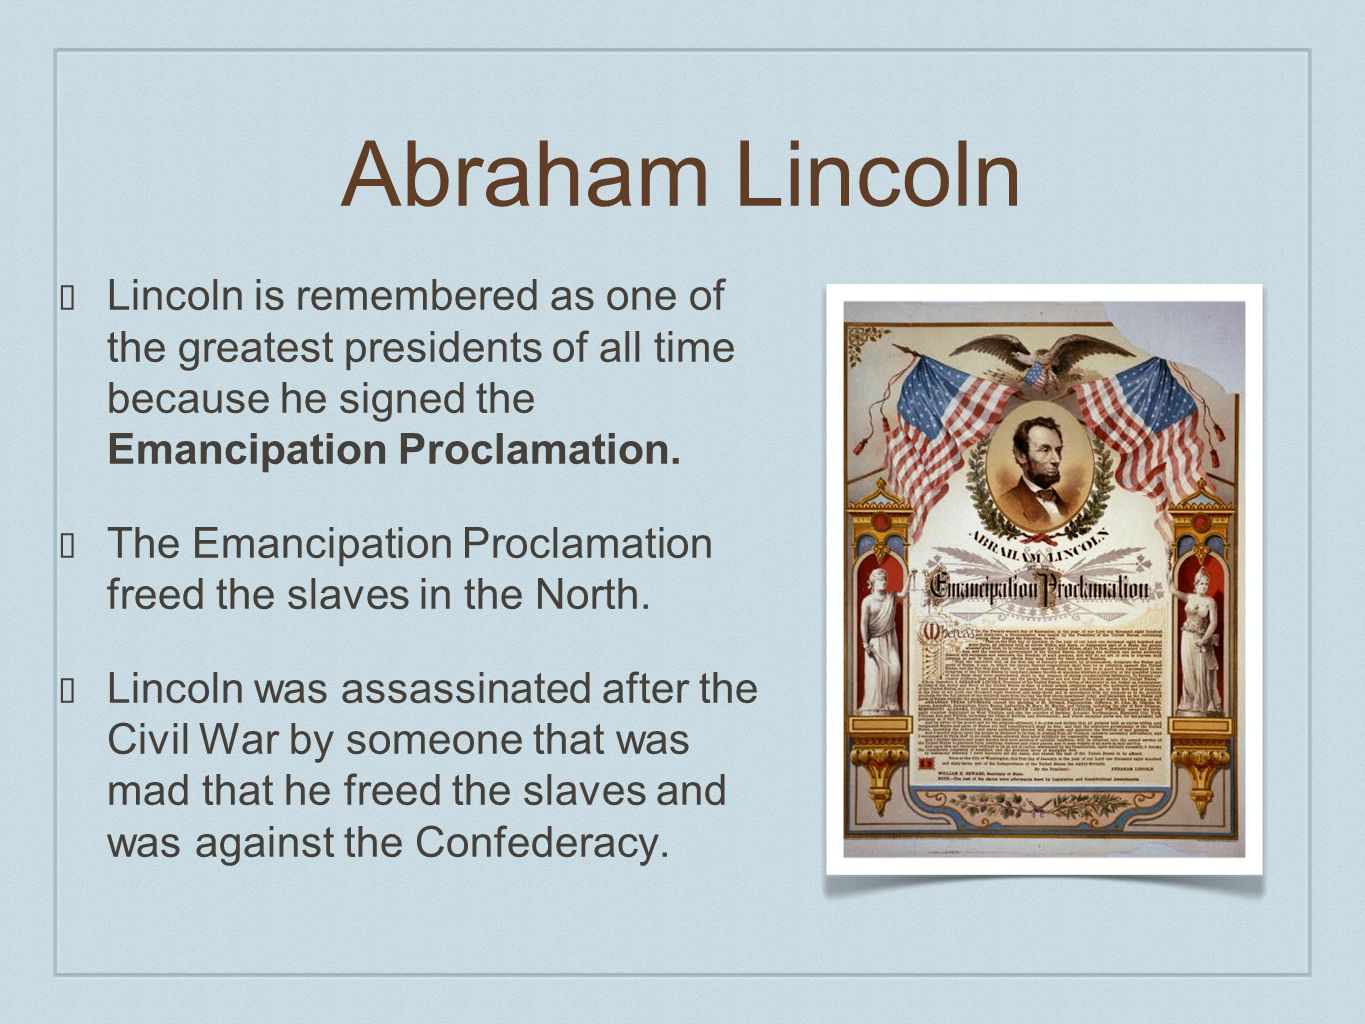 Abraham Lincoln Lincoln is remembered as one of the greatest presidents of all time because he signed the Emancipation Proclamation.